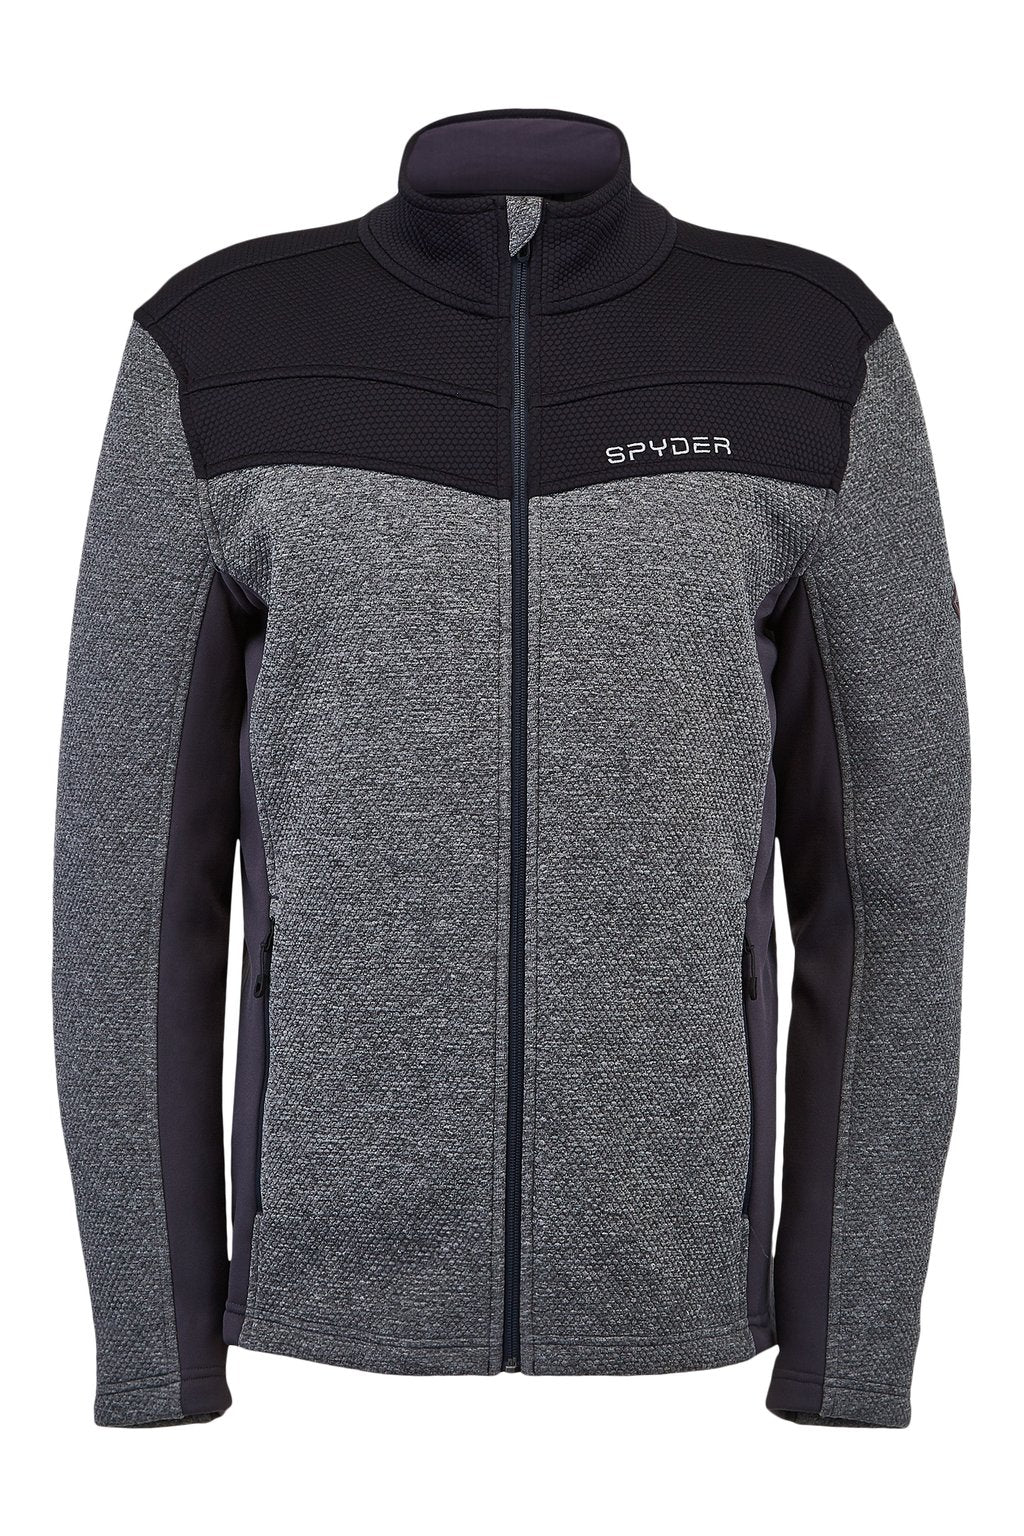 'Spyder' Men's Encore Full Zip Fleece - Ebony